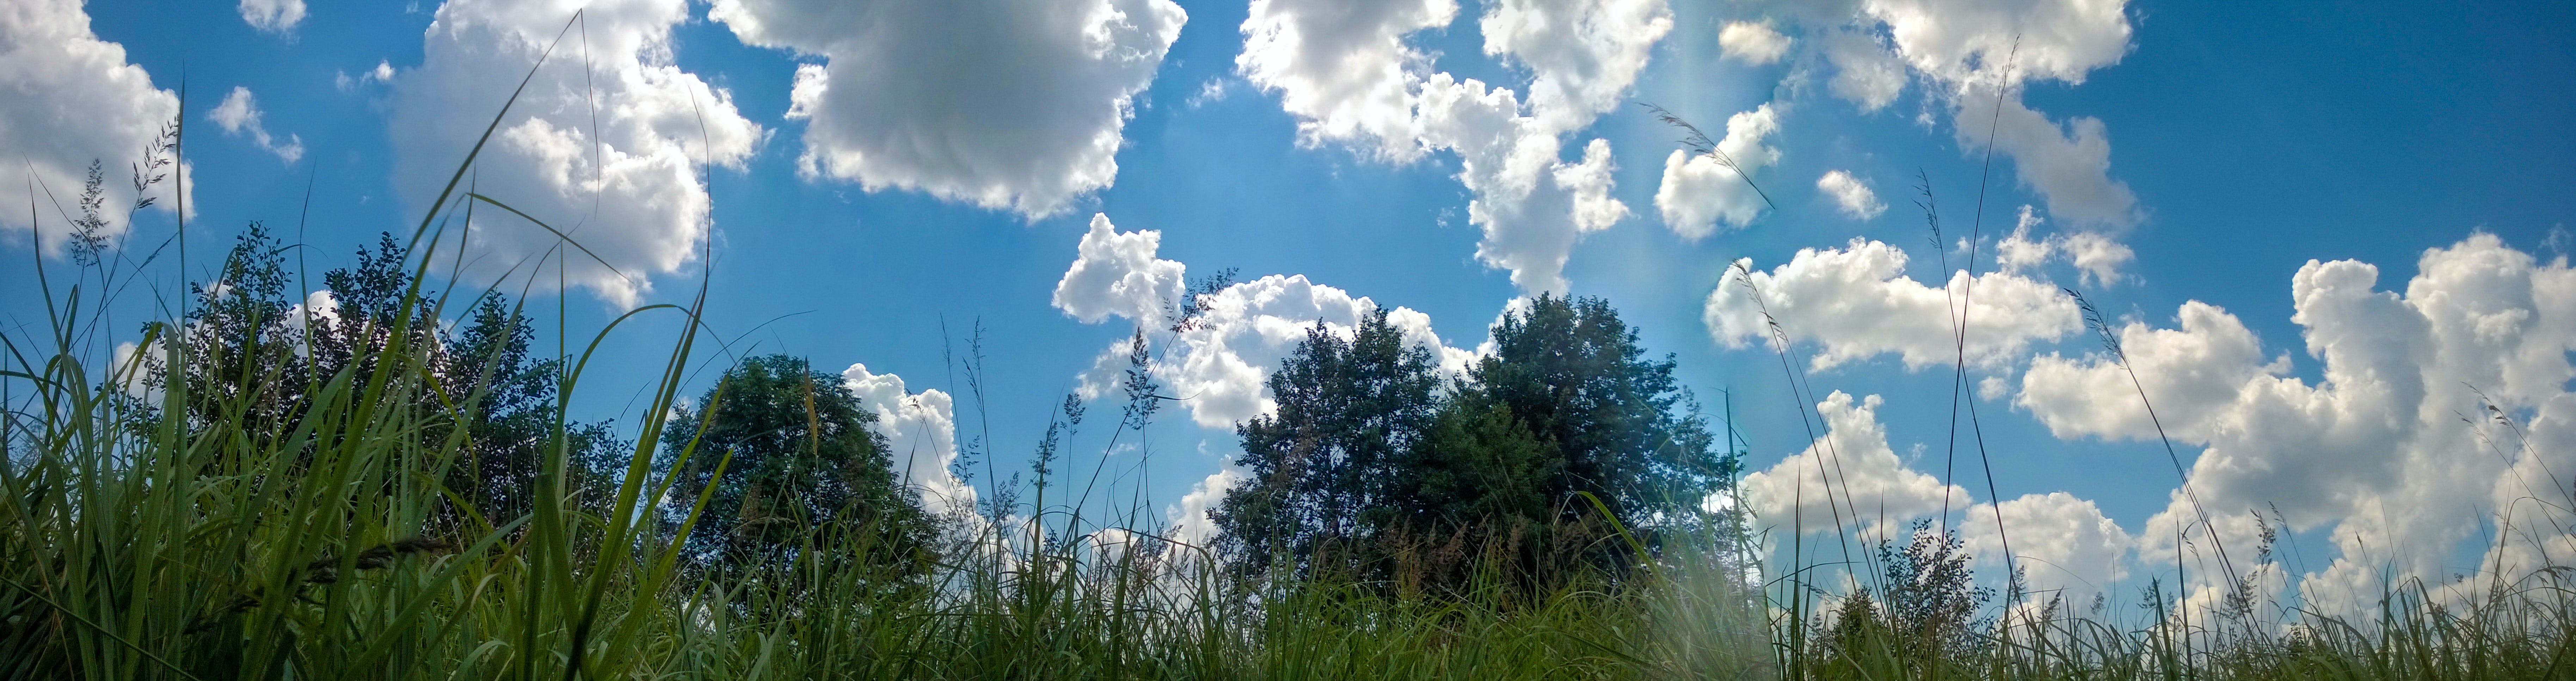 Free stock photo of cloud, forest, grass, nature